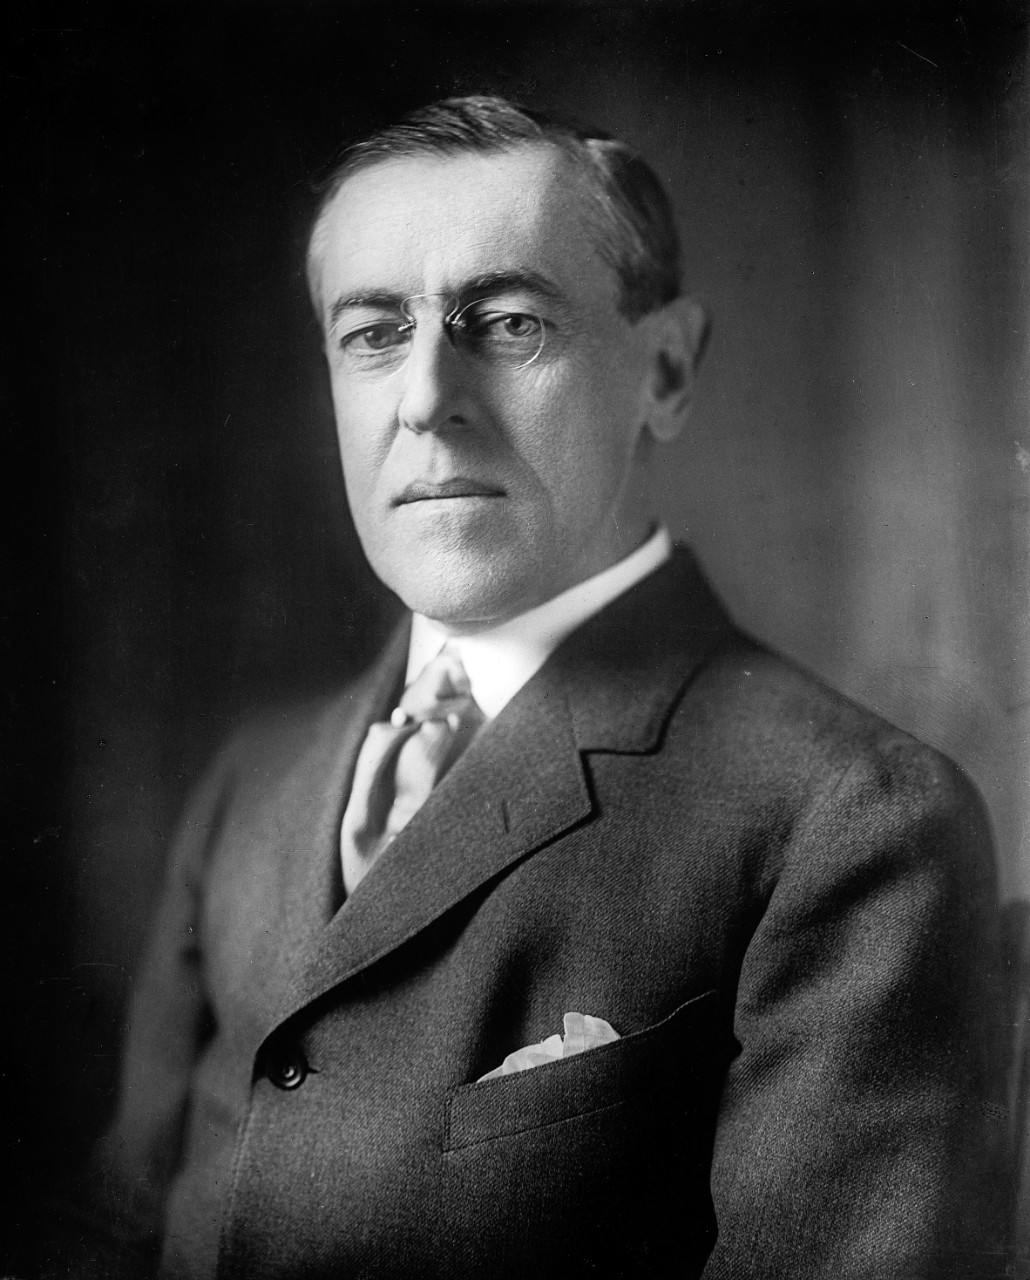 A portrait of Woodrow Wilson who was the U.S. president during World War One.